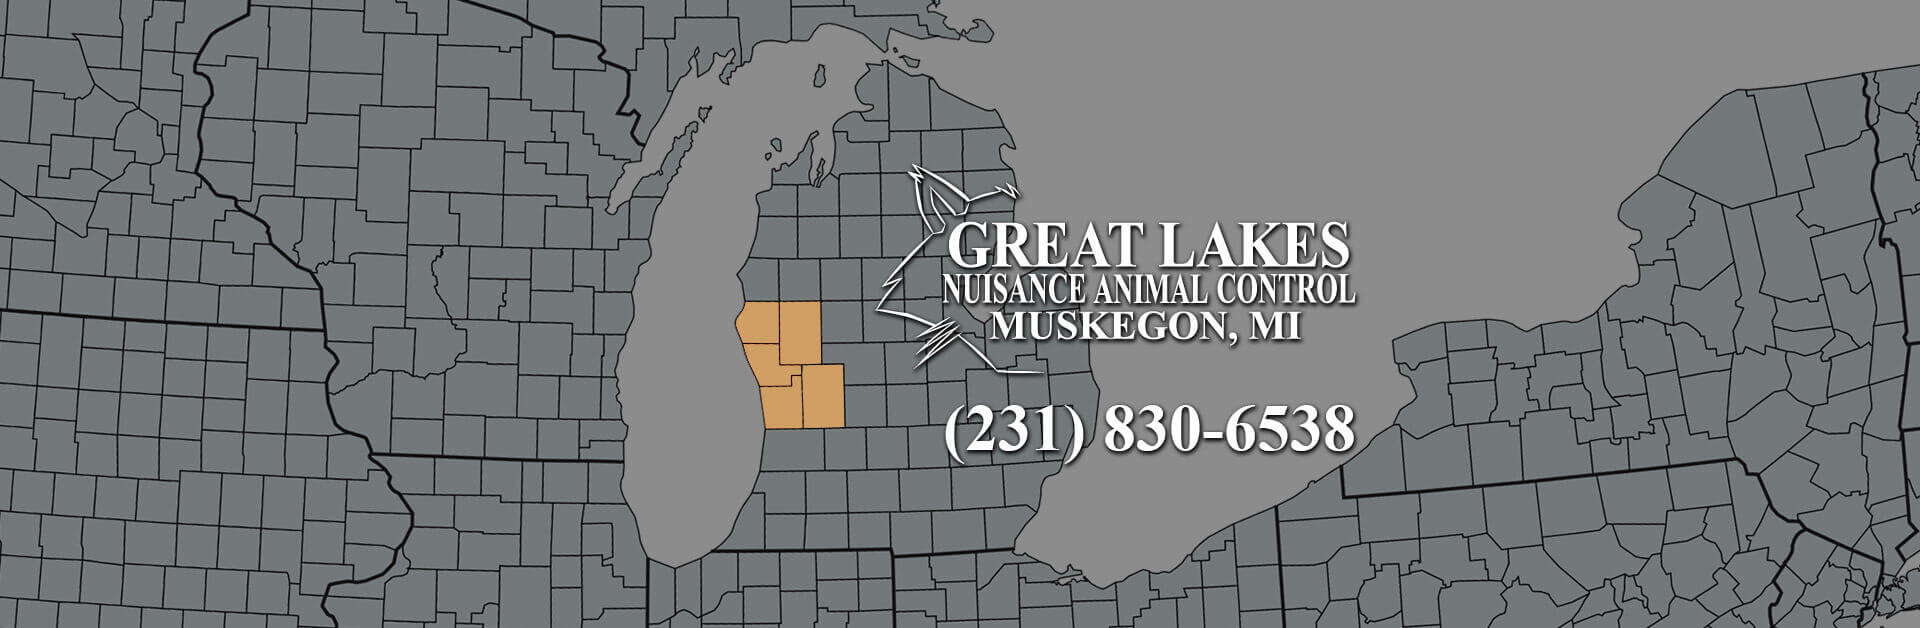 Our service area covers Muskegon, Ottawa, Oceana, Newaygo and Kent Counties